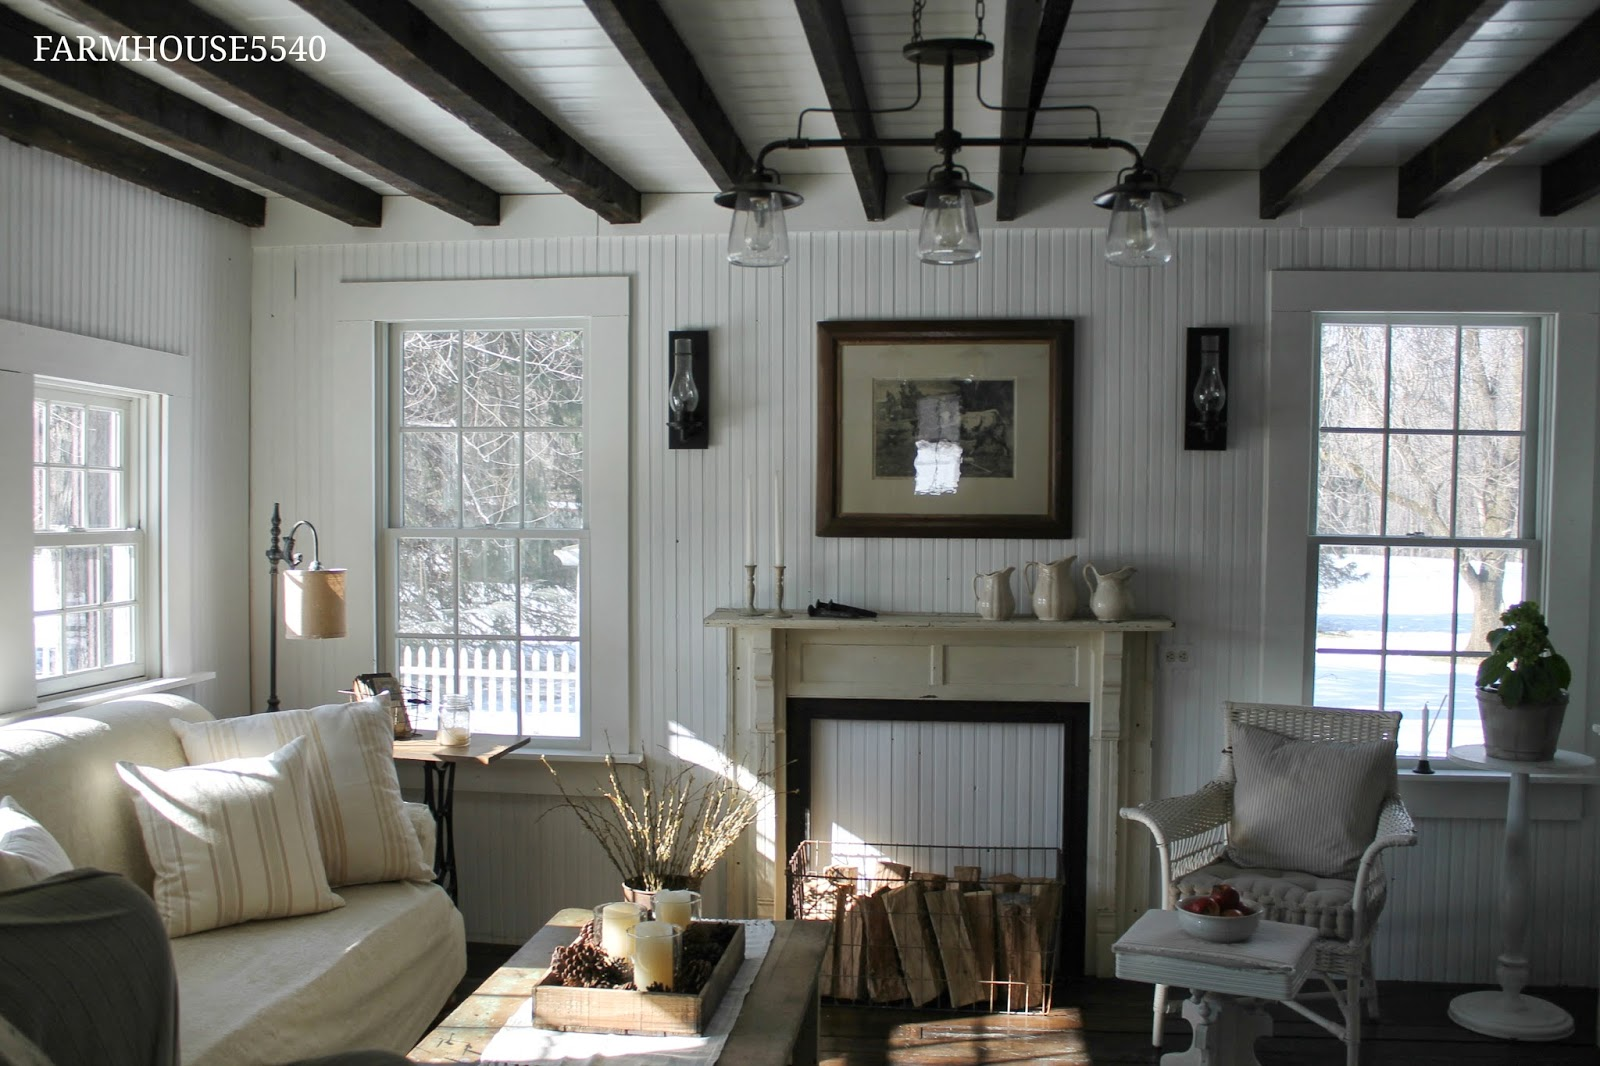 FARMHOUSE 5540: Family Room Part Two